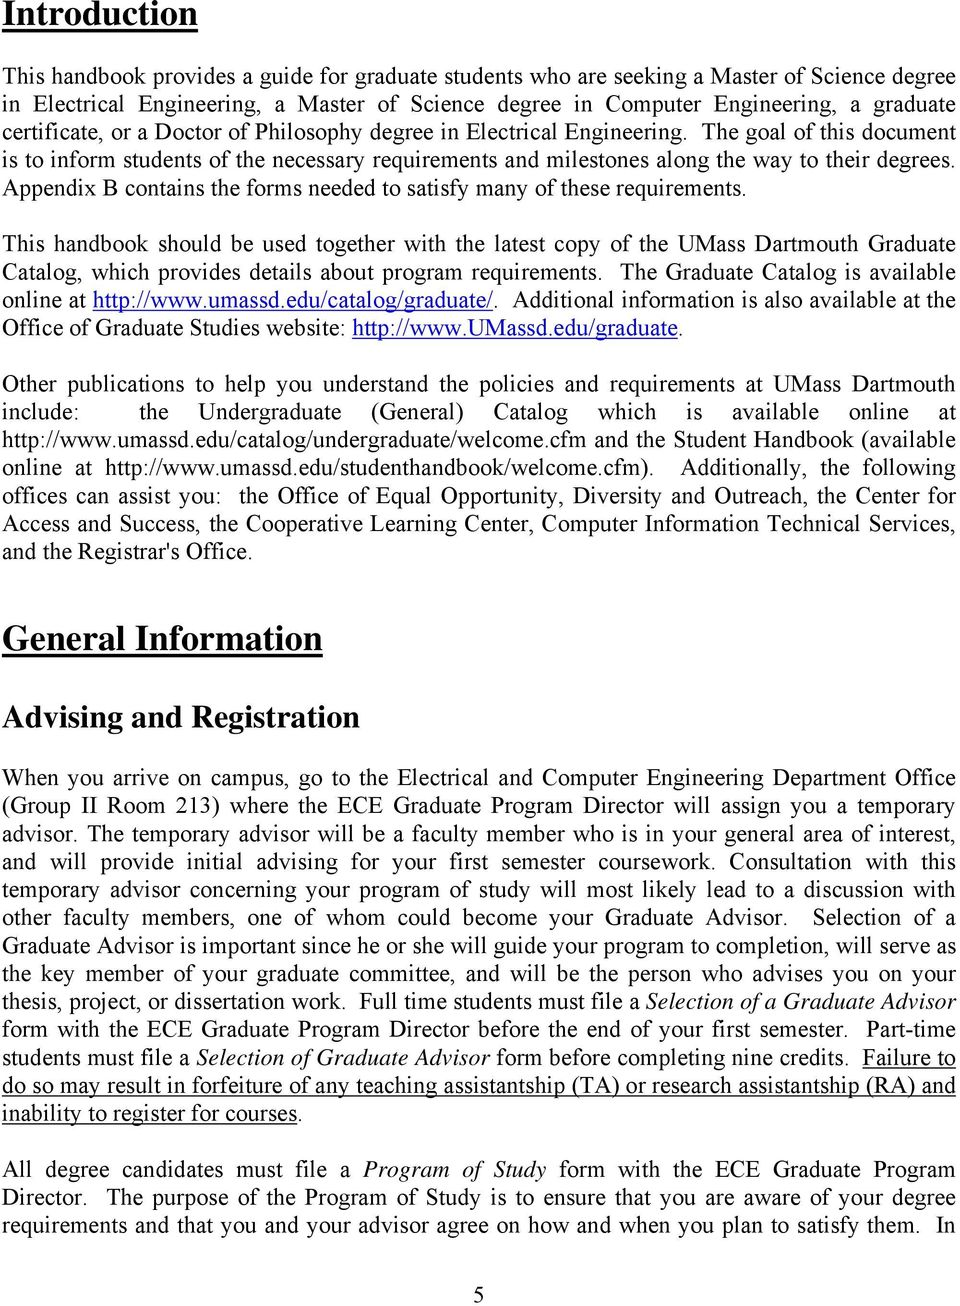 umass dartmouth thesis guidelines